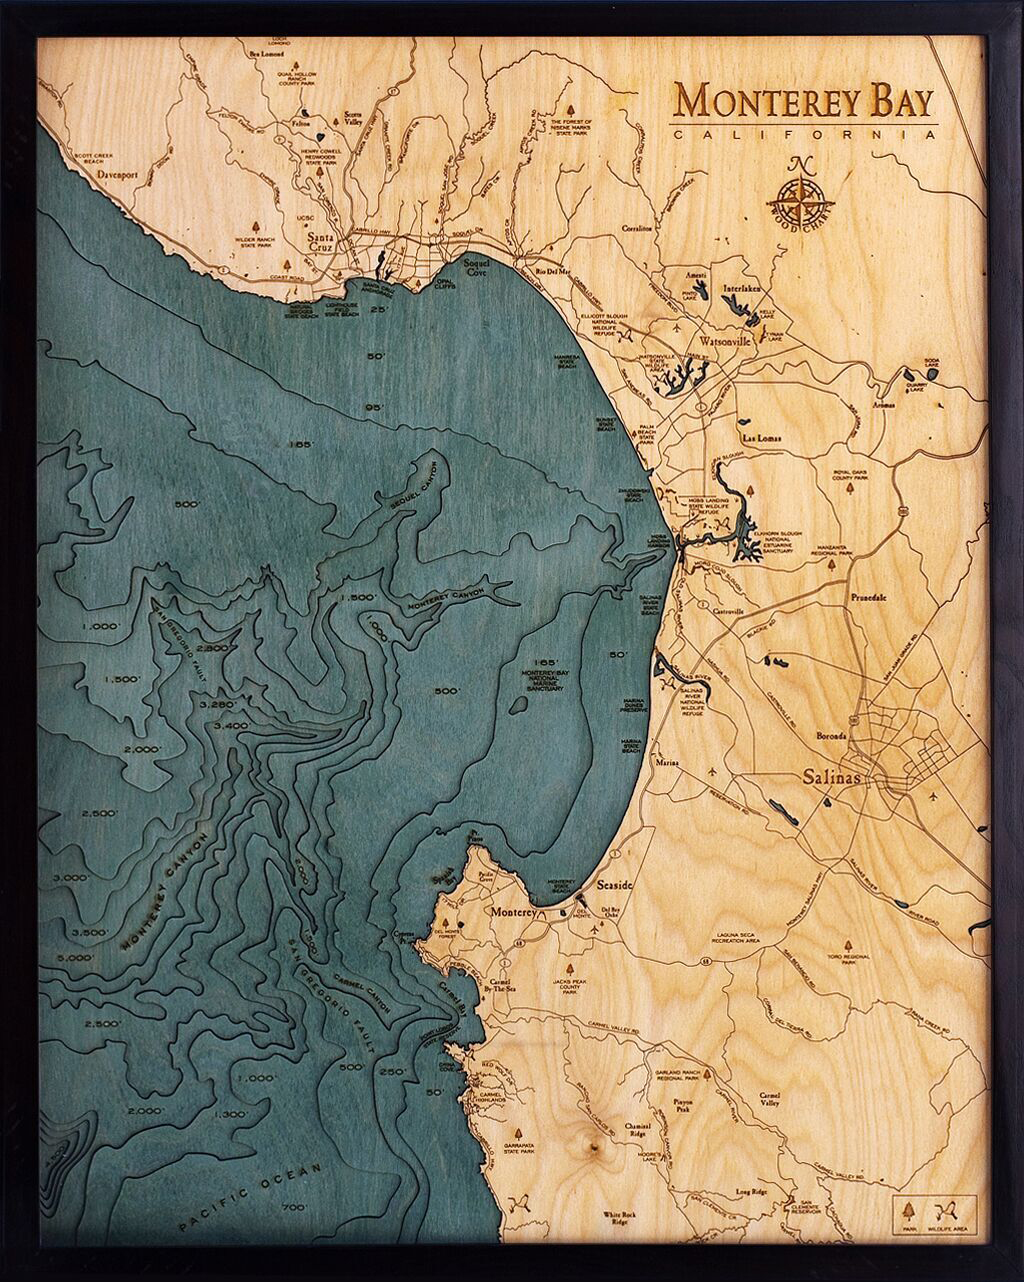 Bathymetric Map Monterey Bay, California